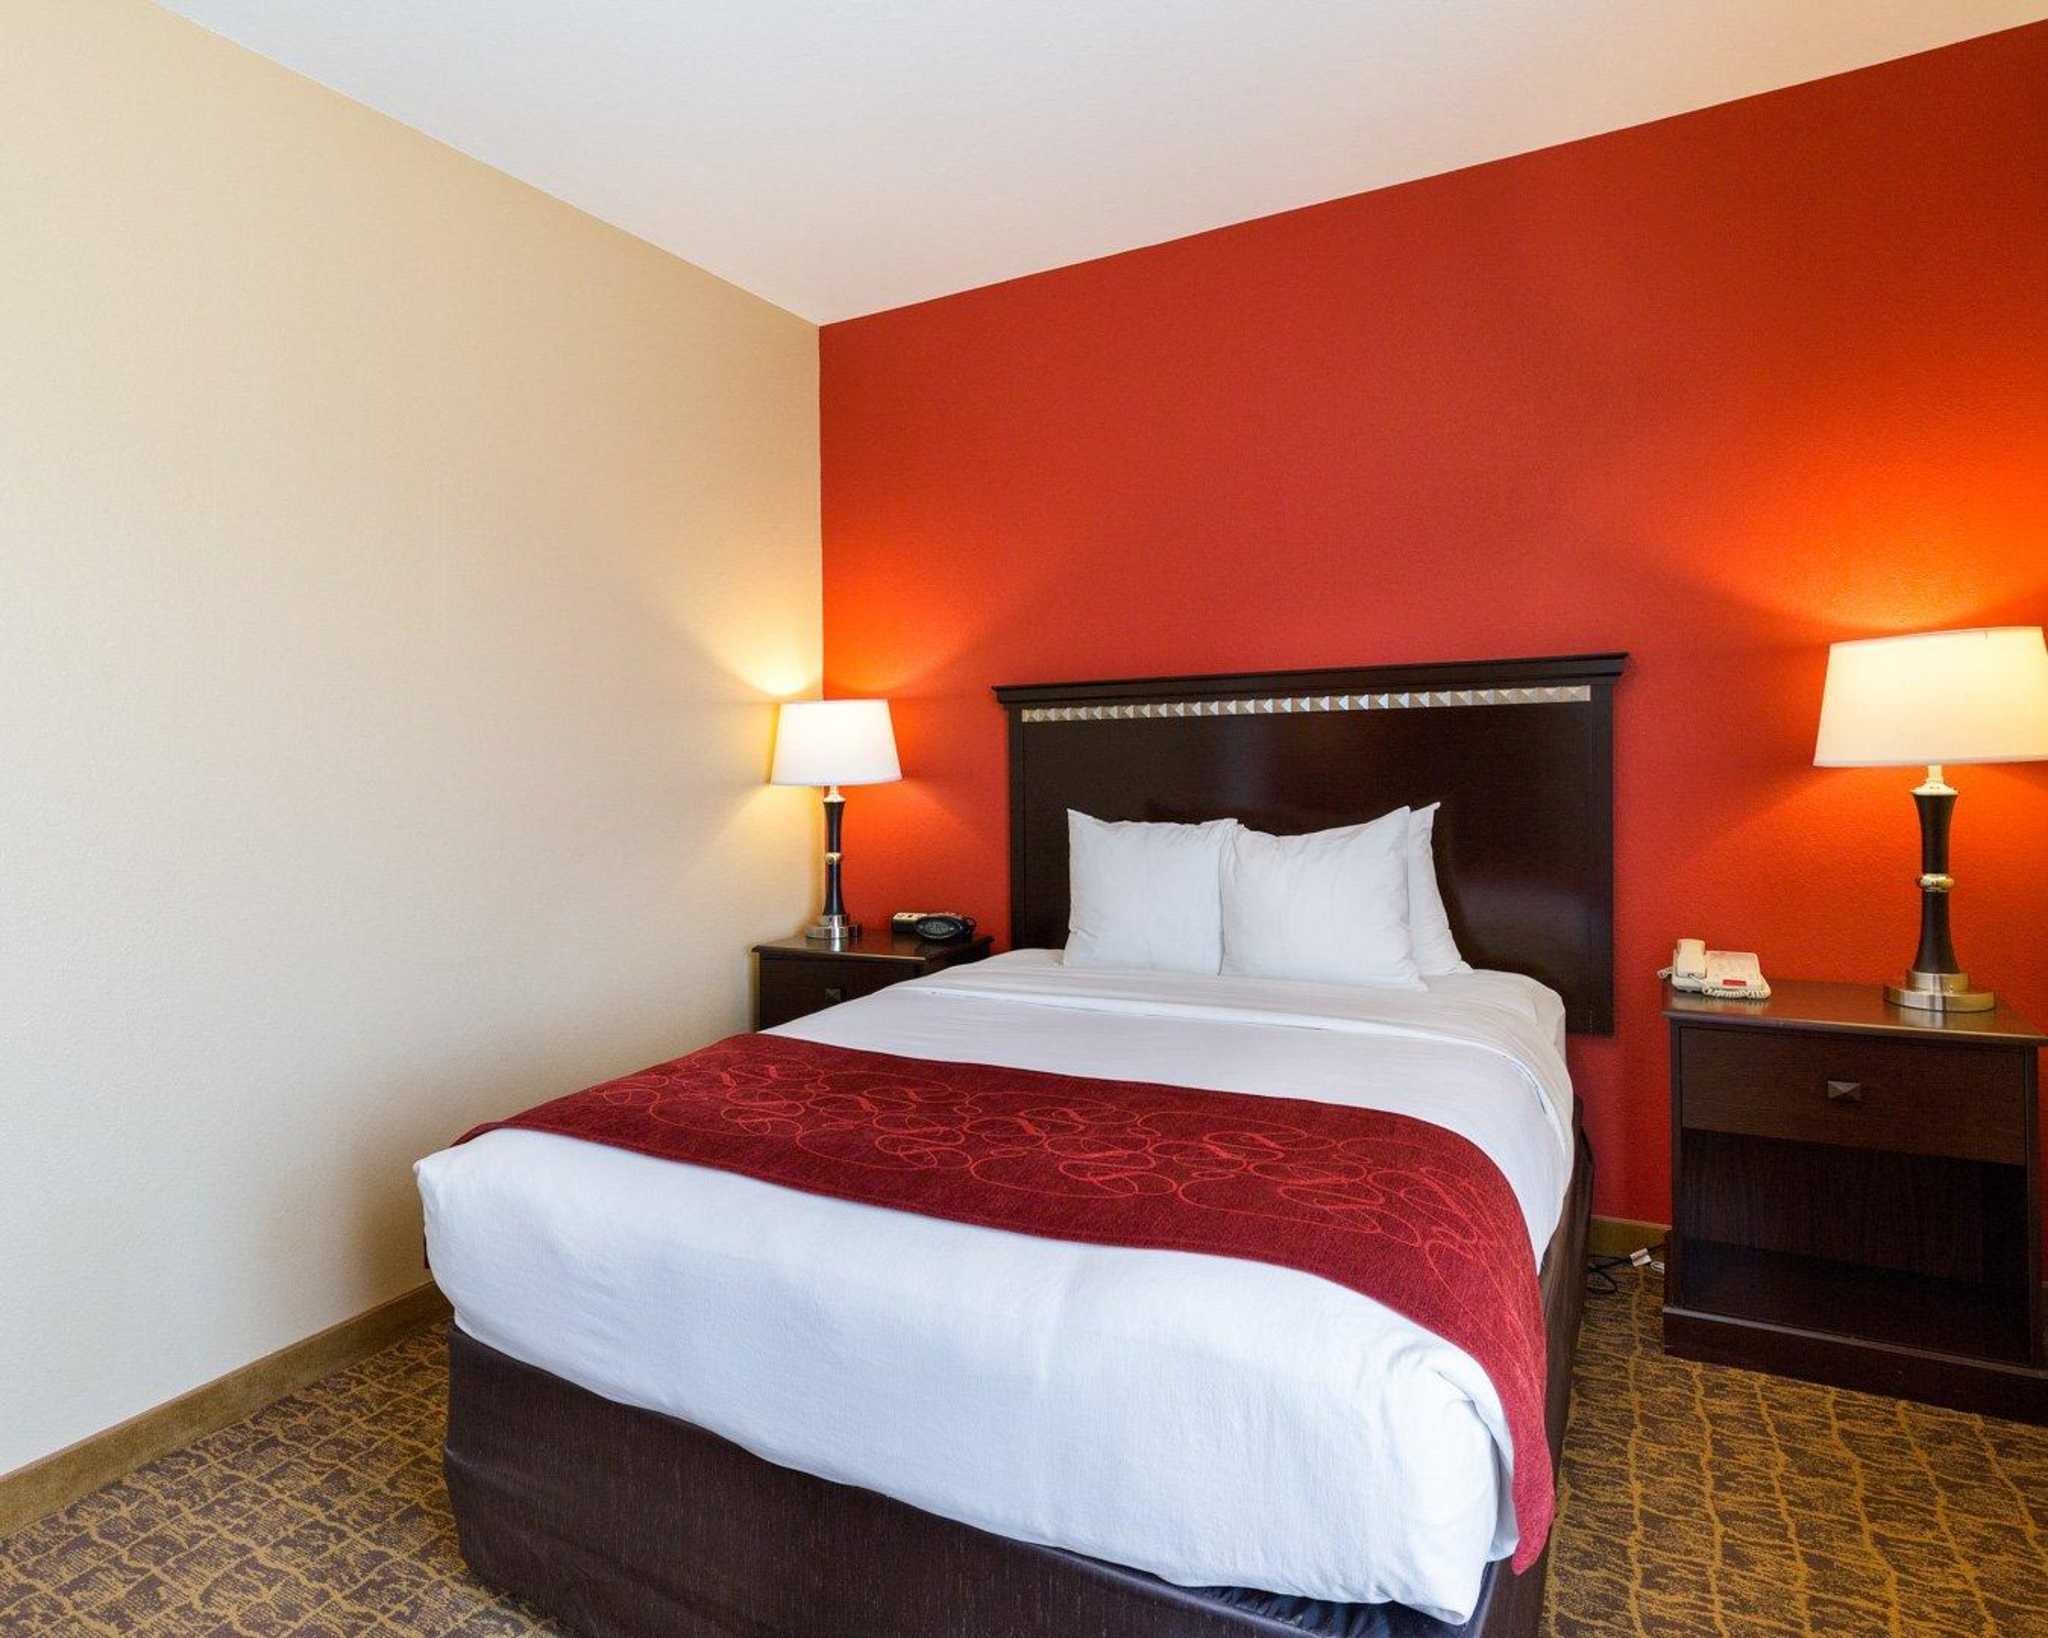 Comfort Suites Pearland - South Houston image 3